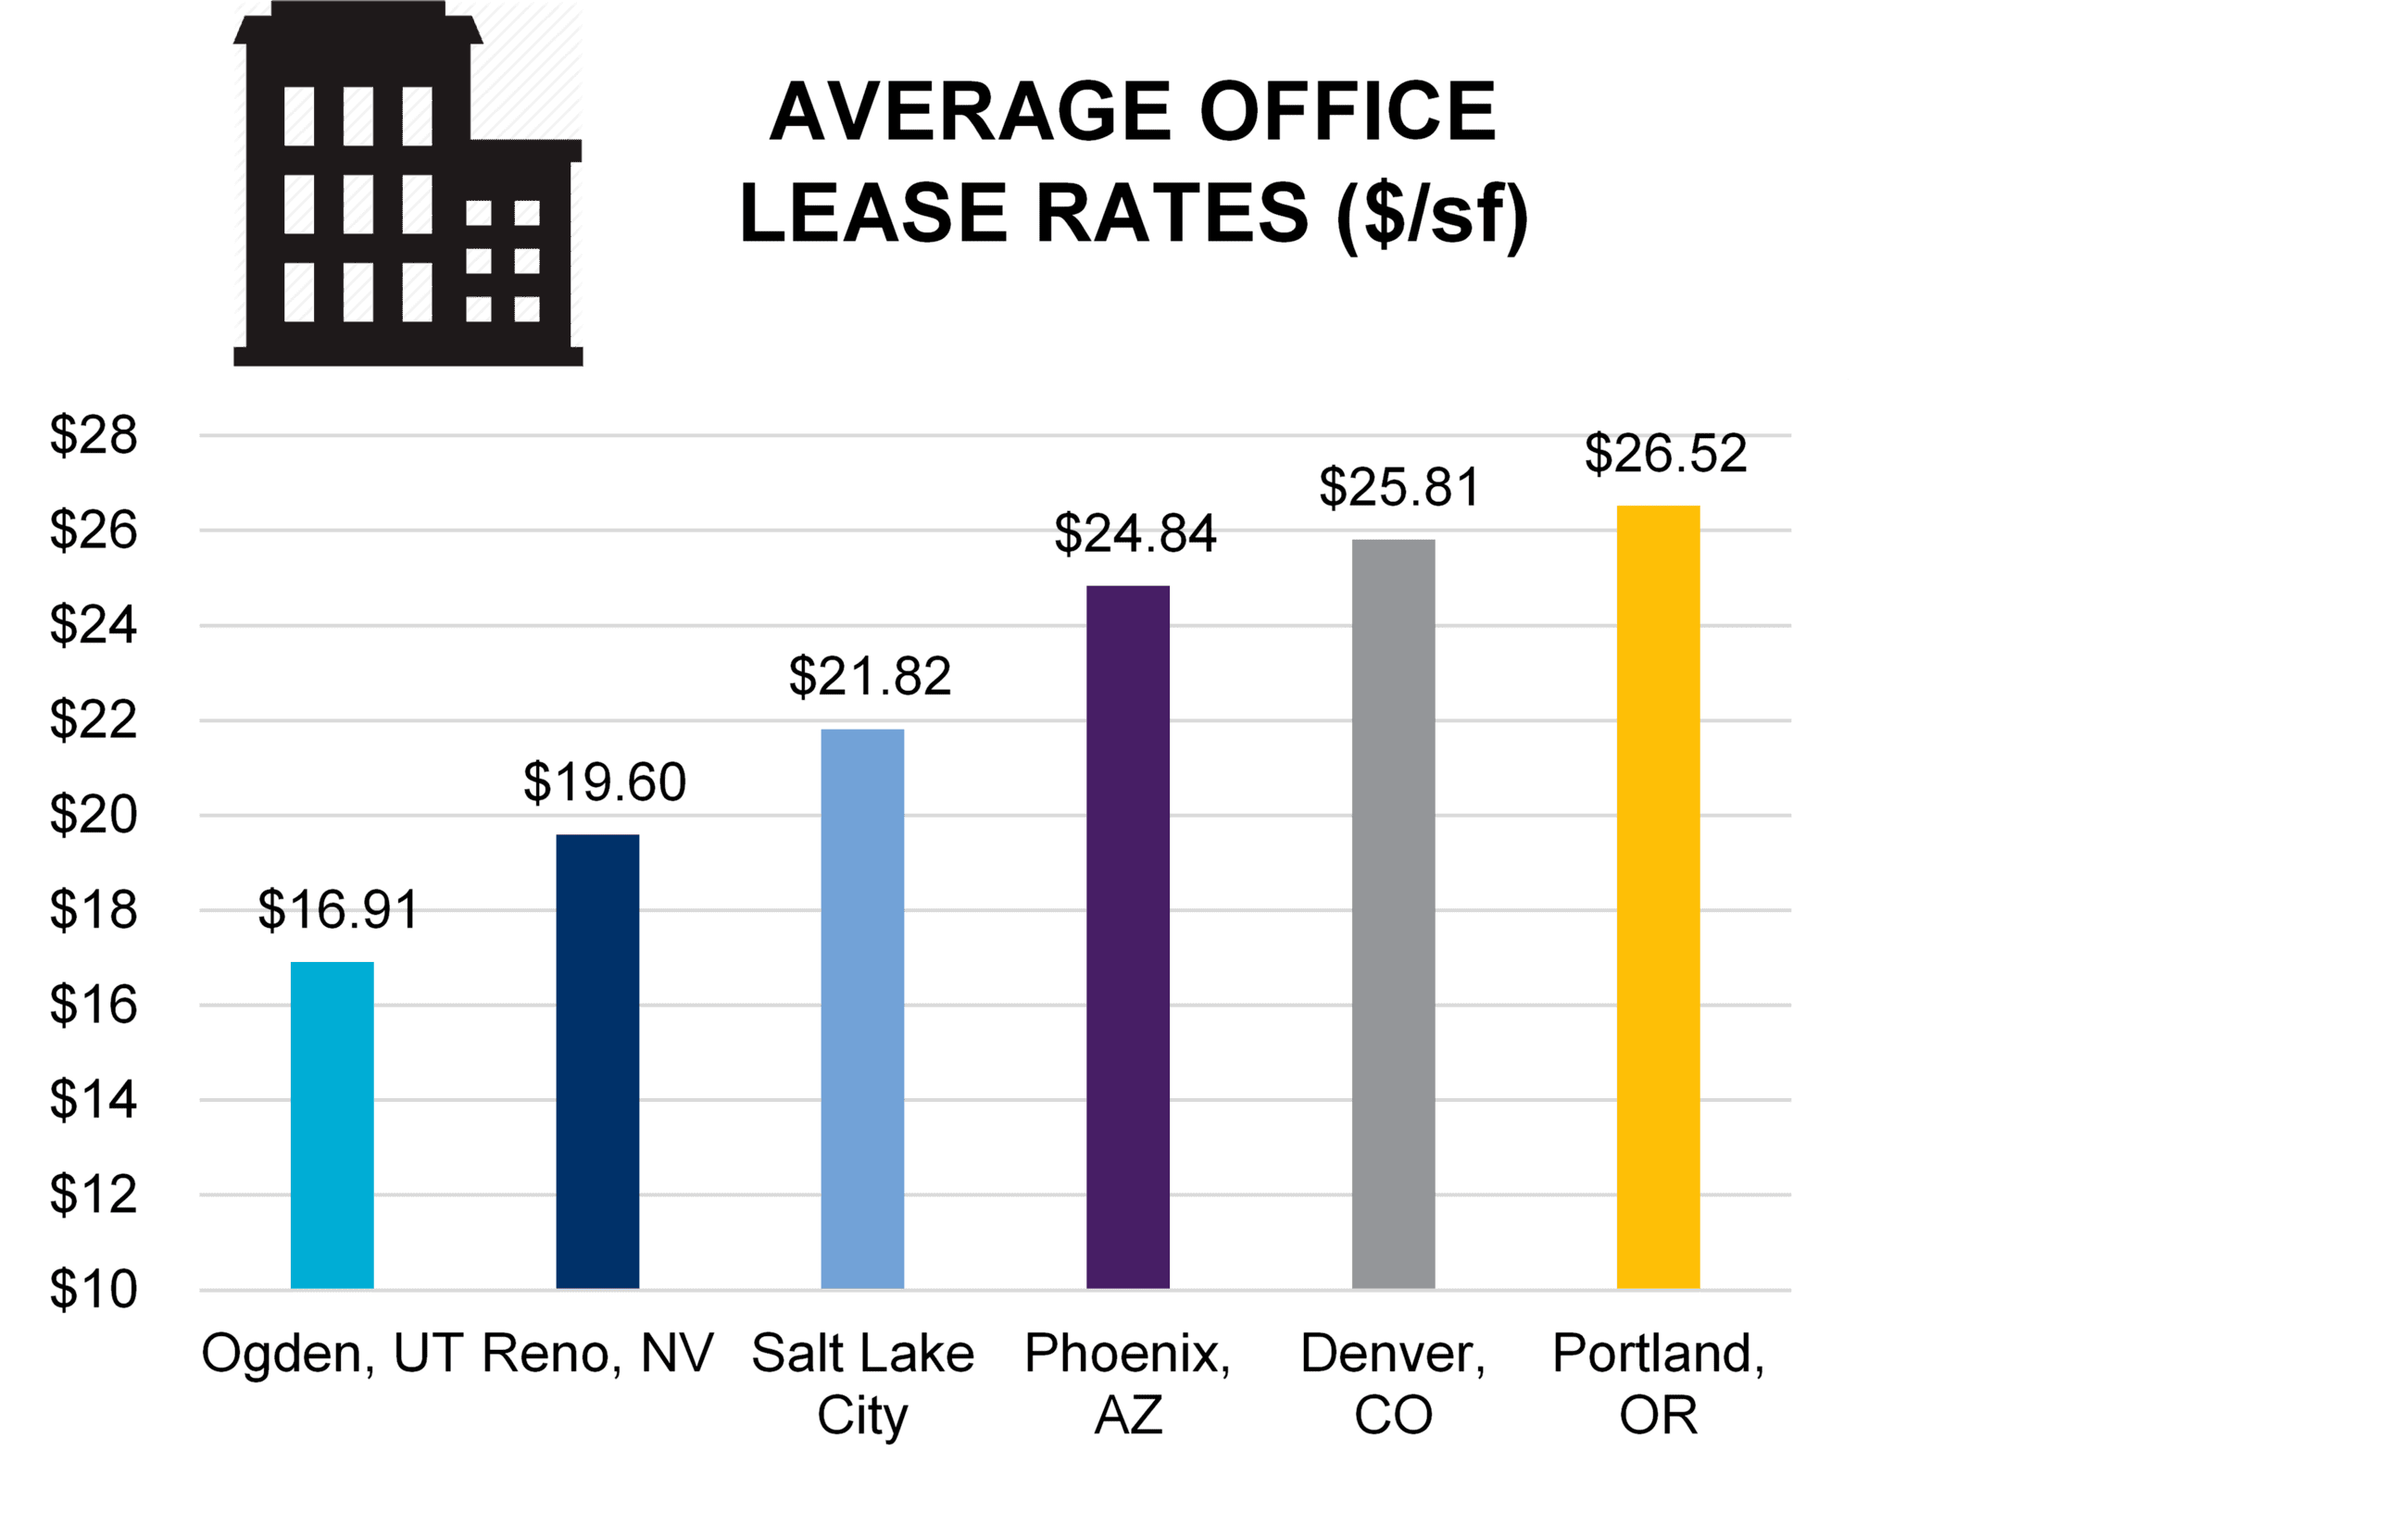 Average Office Lease Rates (PNG)